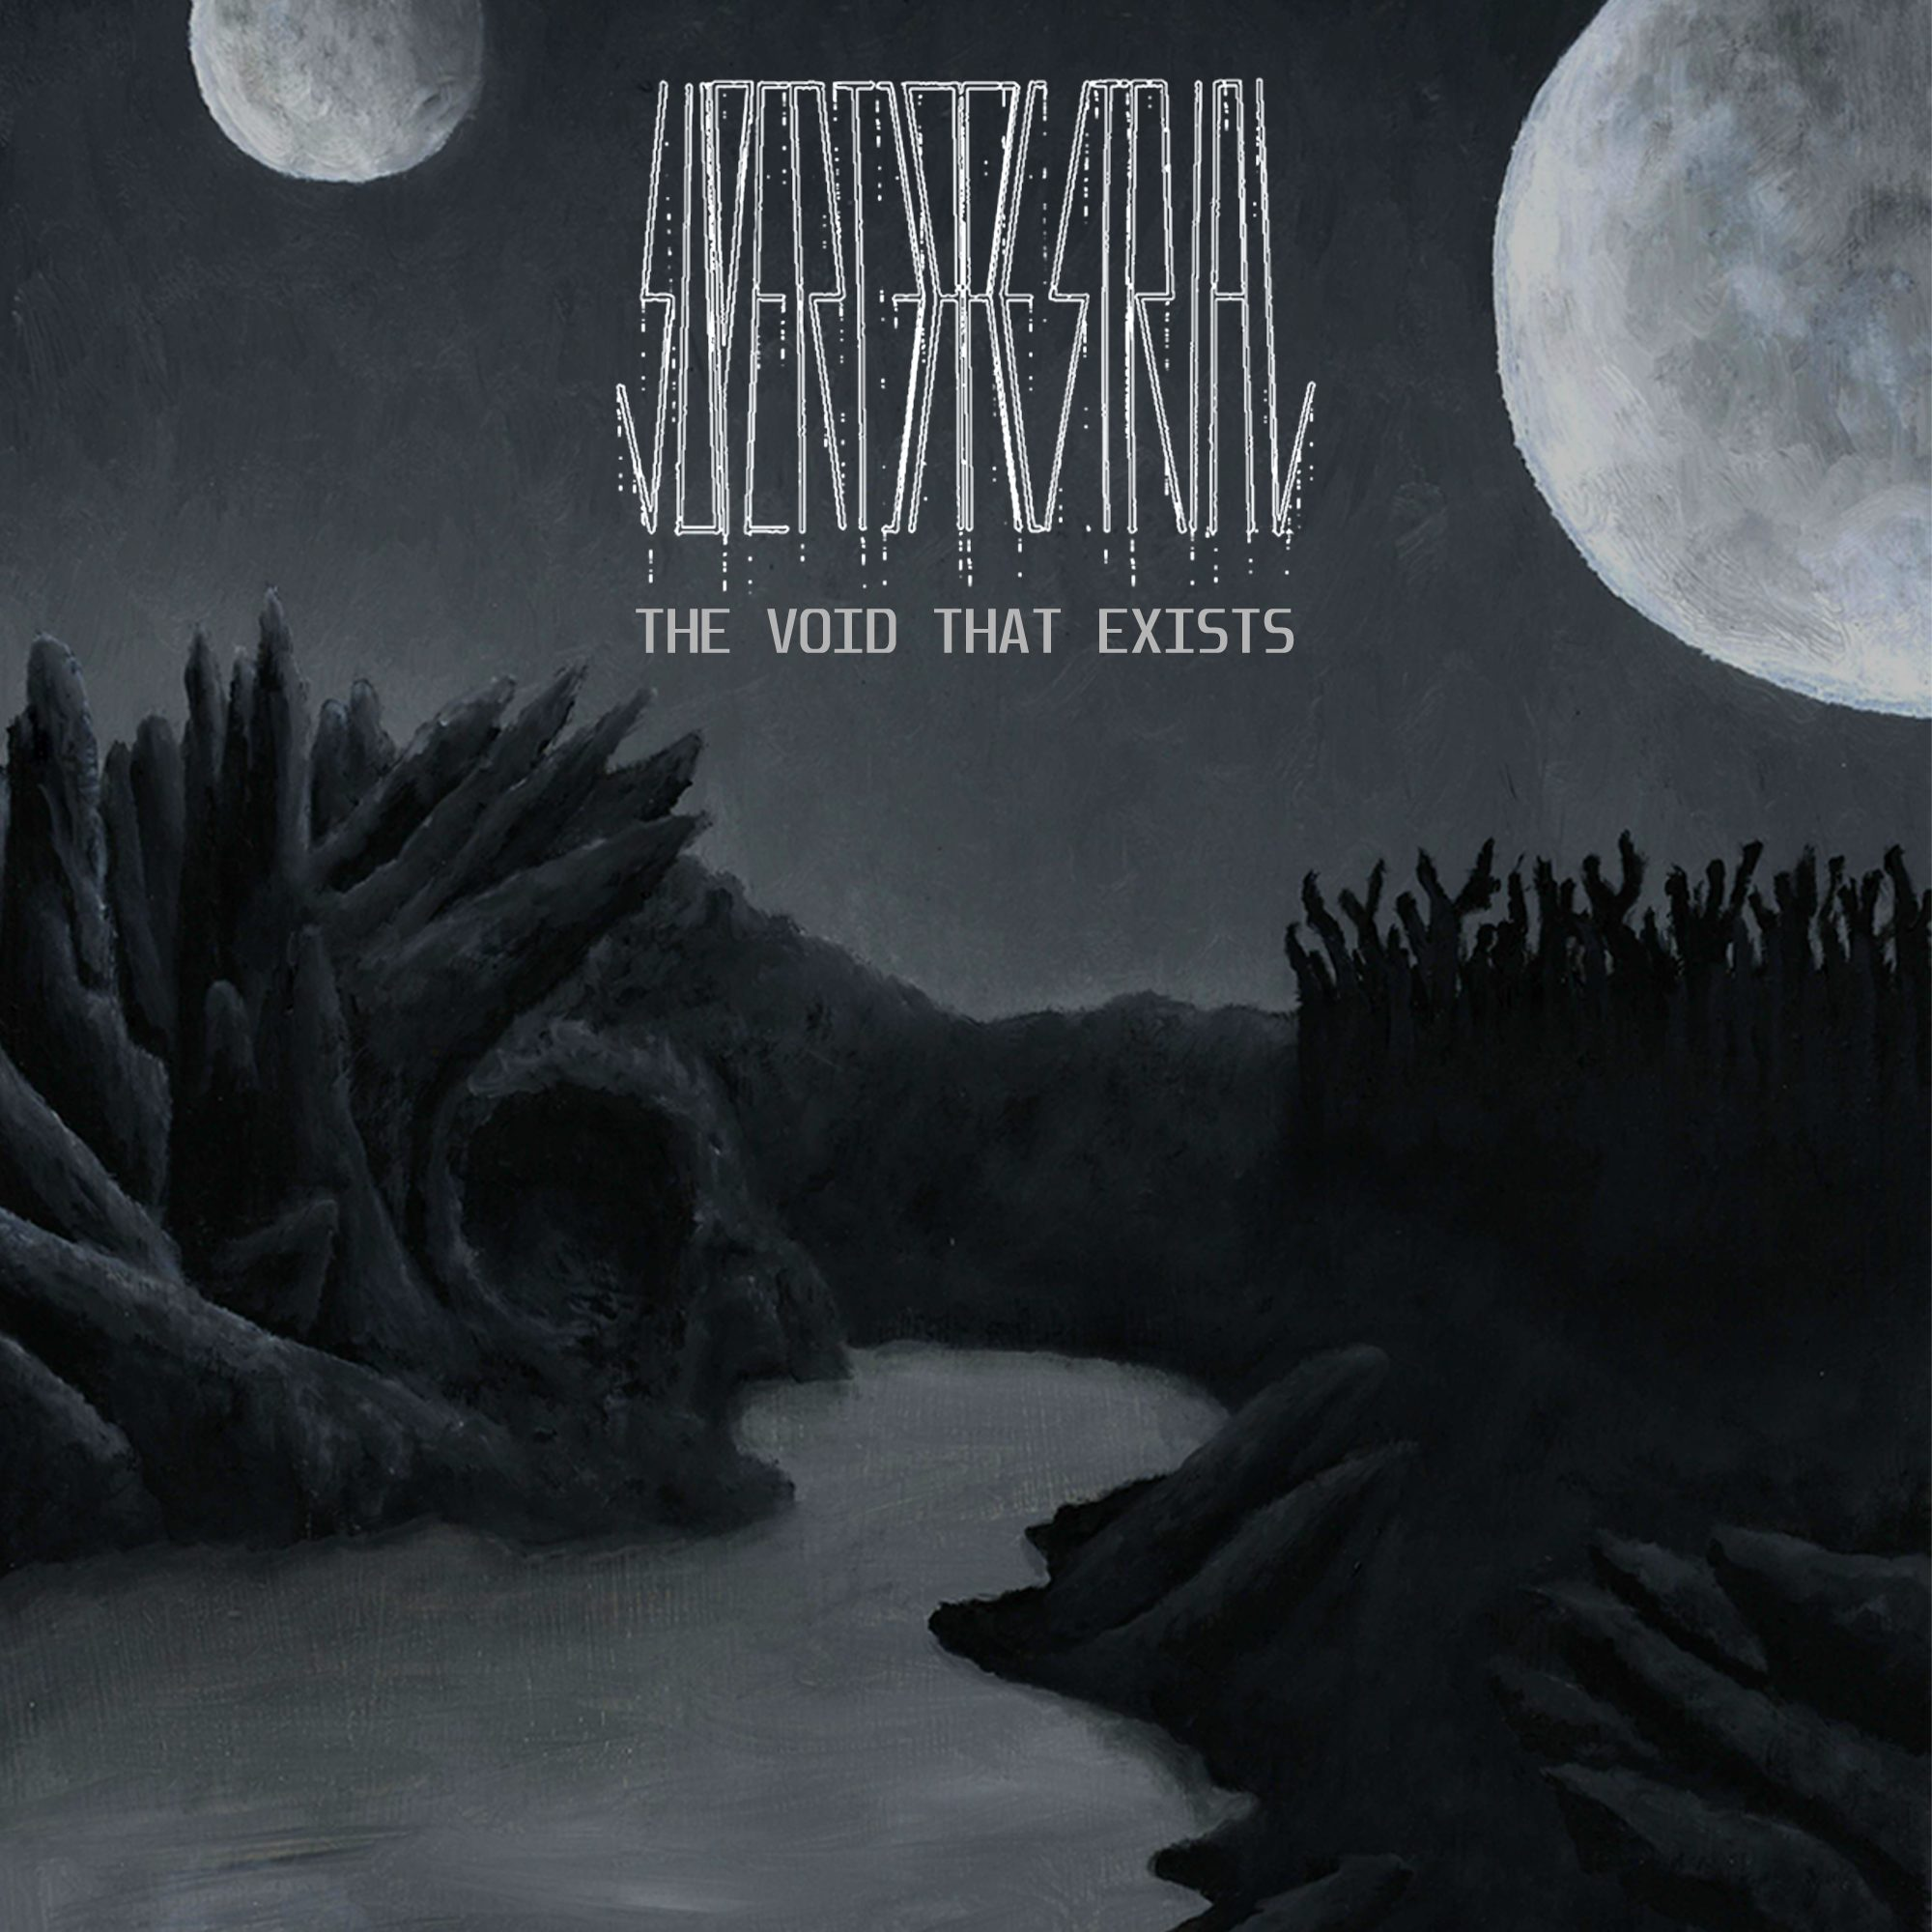 Superterrestrial - The Void that Exists Review | Angry Metal Guy